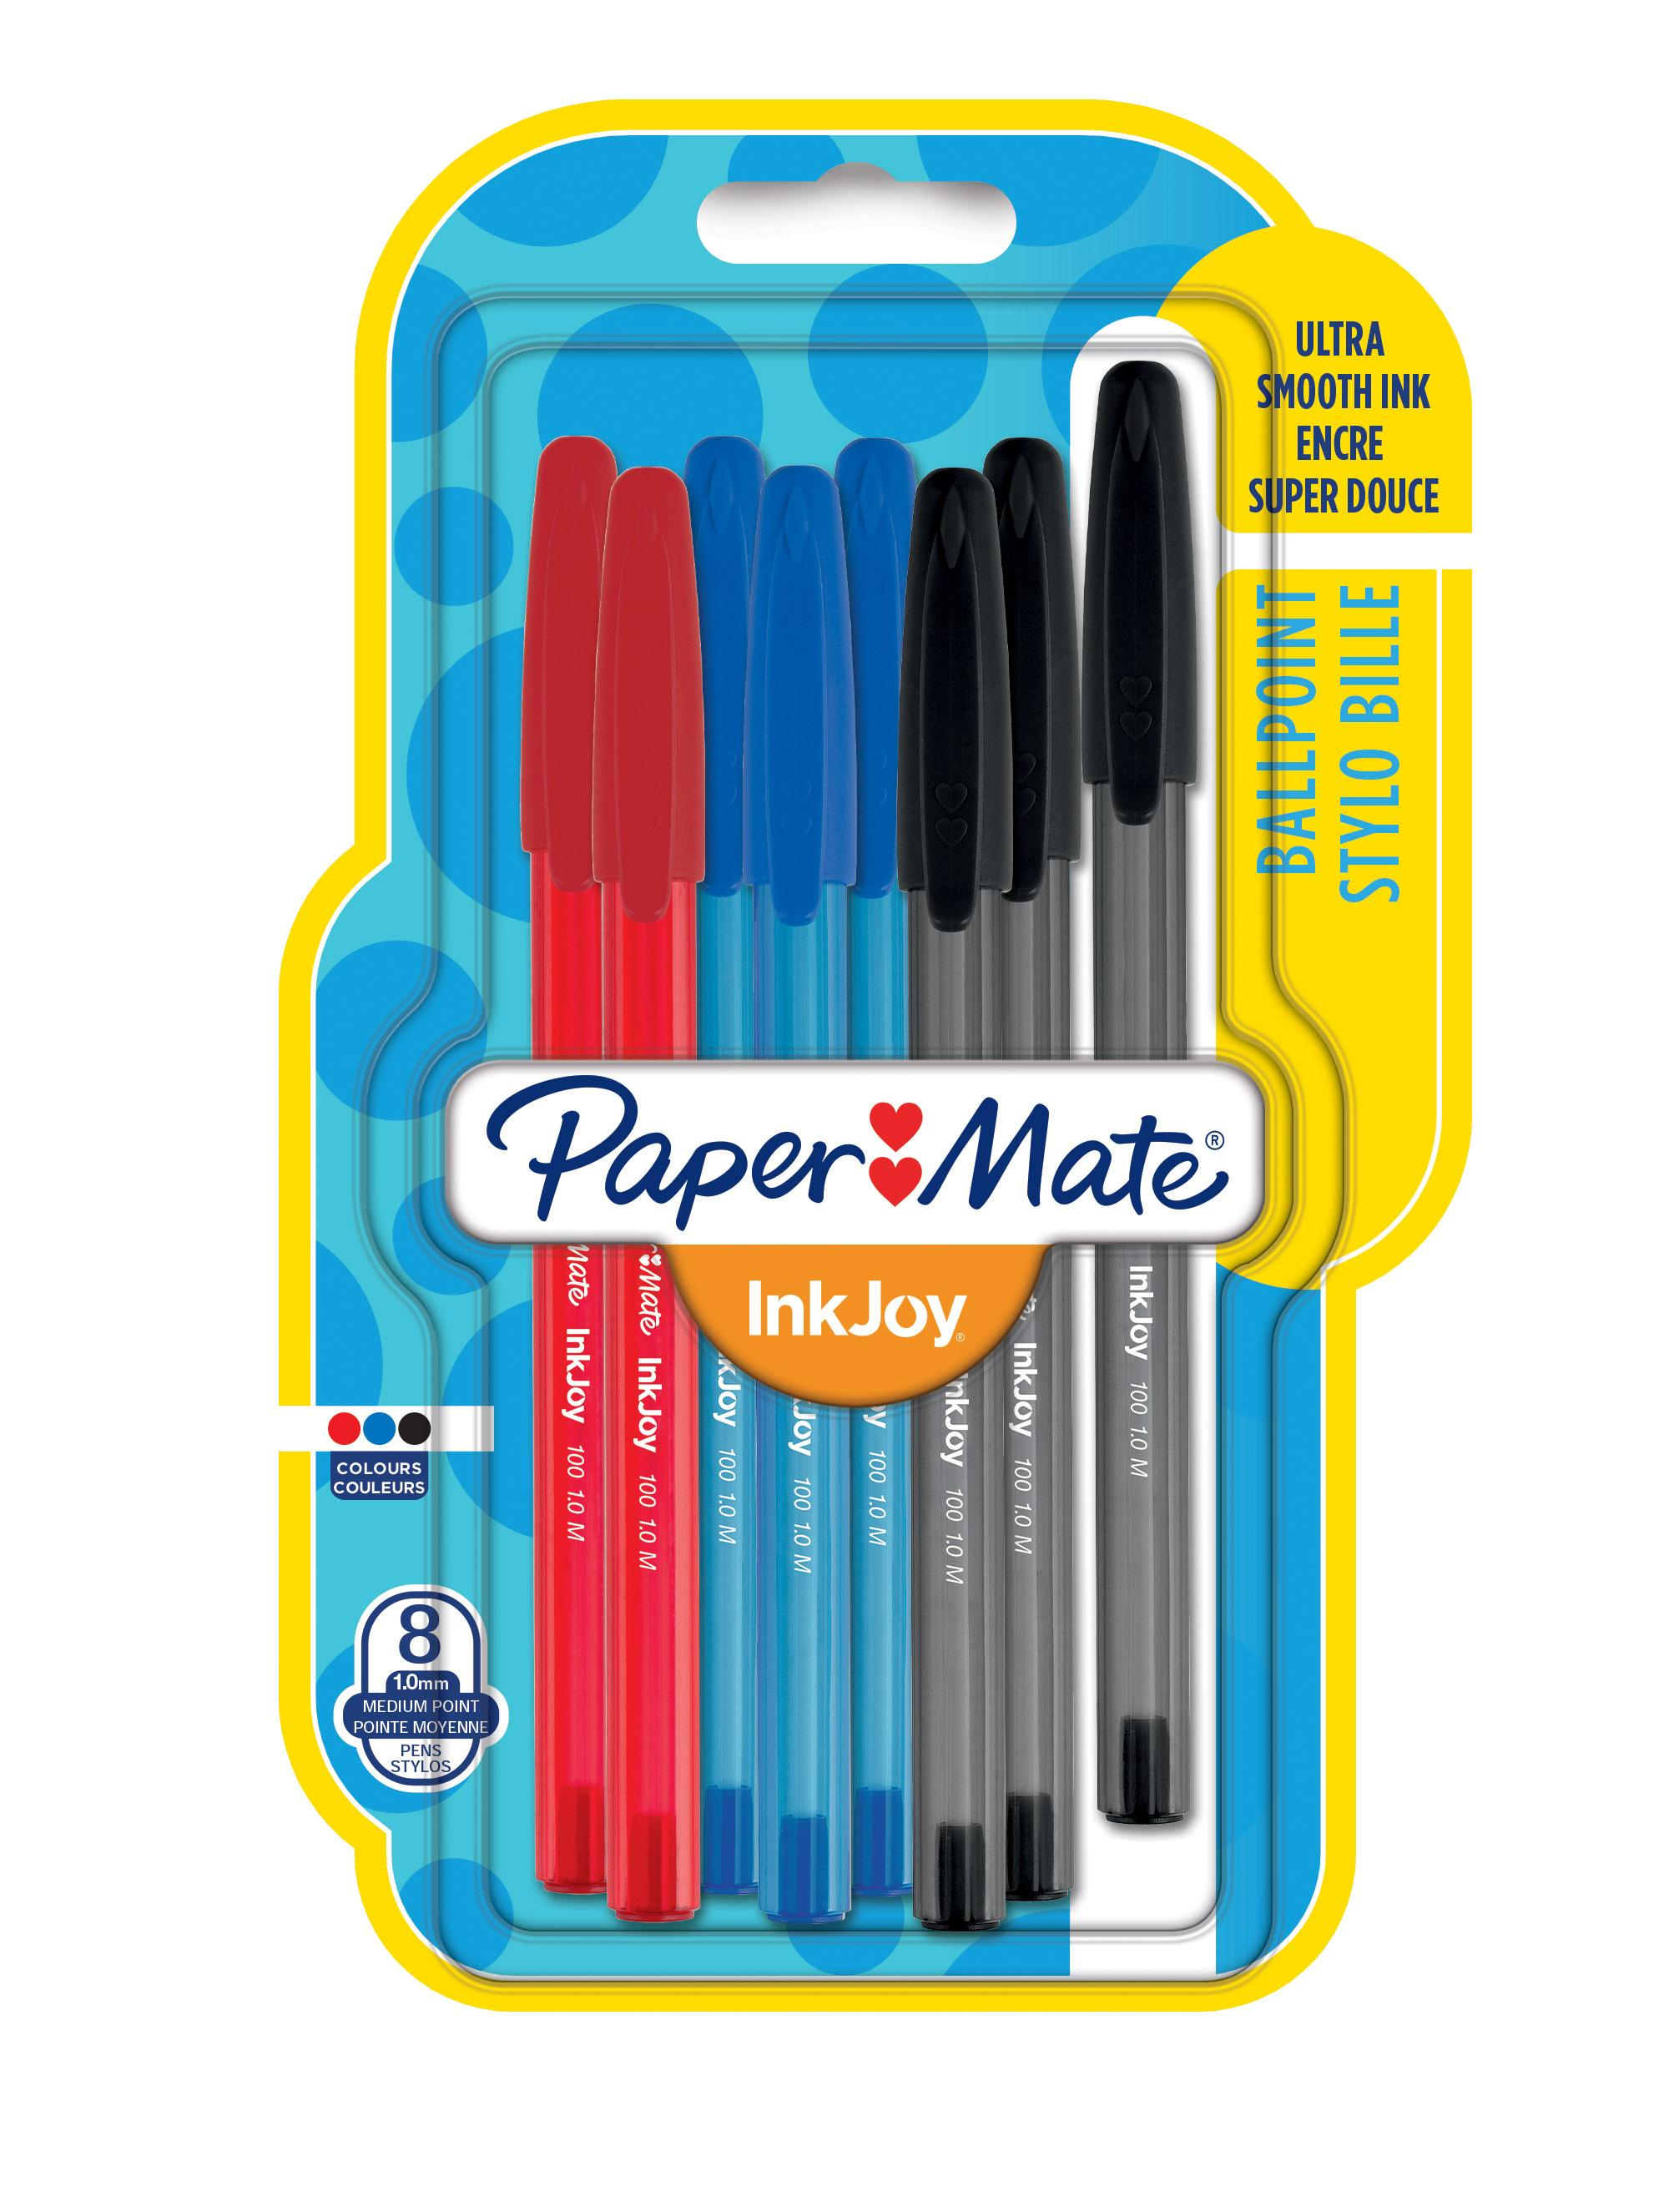 PaperMate InkJoy 100 CAP ATD PK8